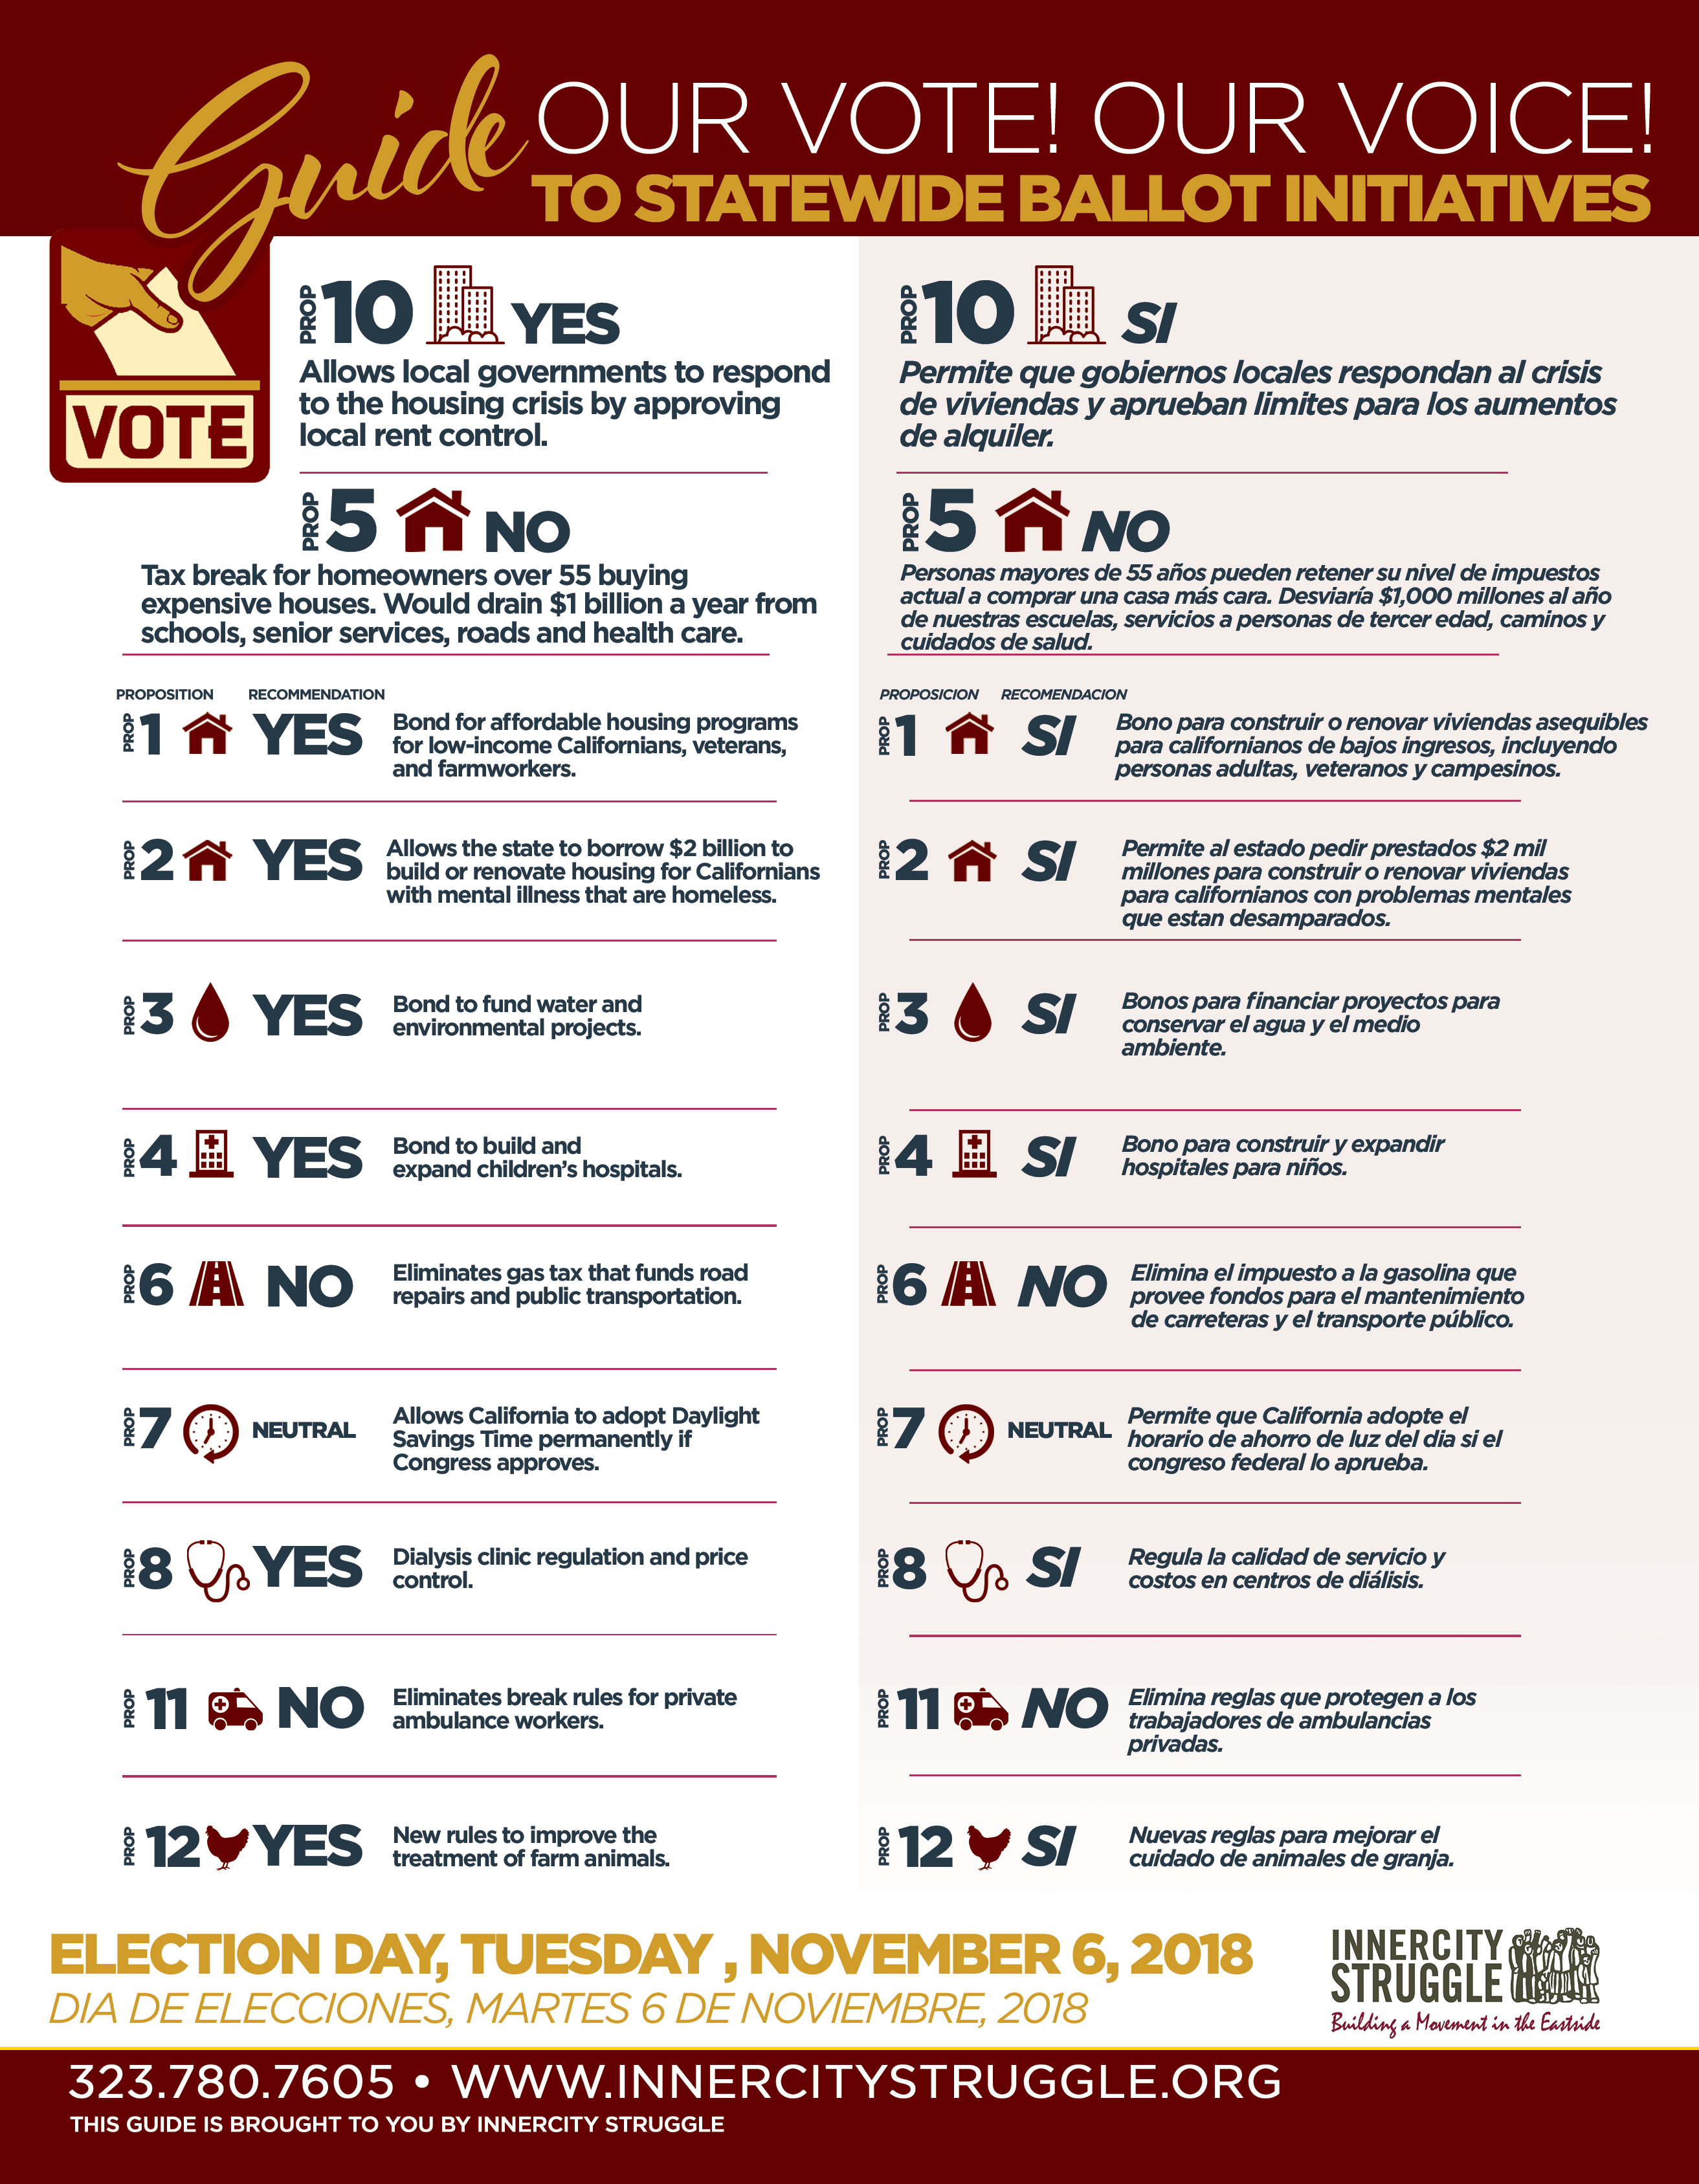 voter-guide-ics2018-large.jpg